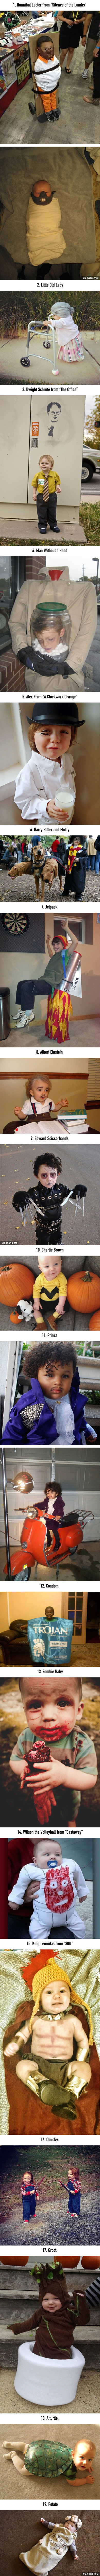 19 Of The Best Kids' Halloween Costumes Ever. I will do the same thing definitely when I have one